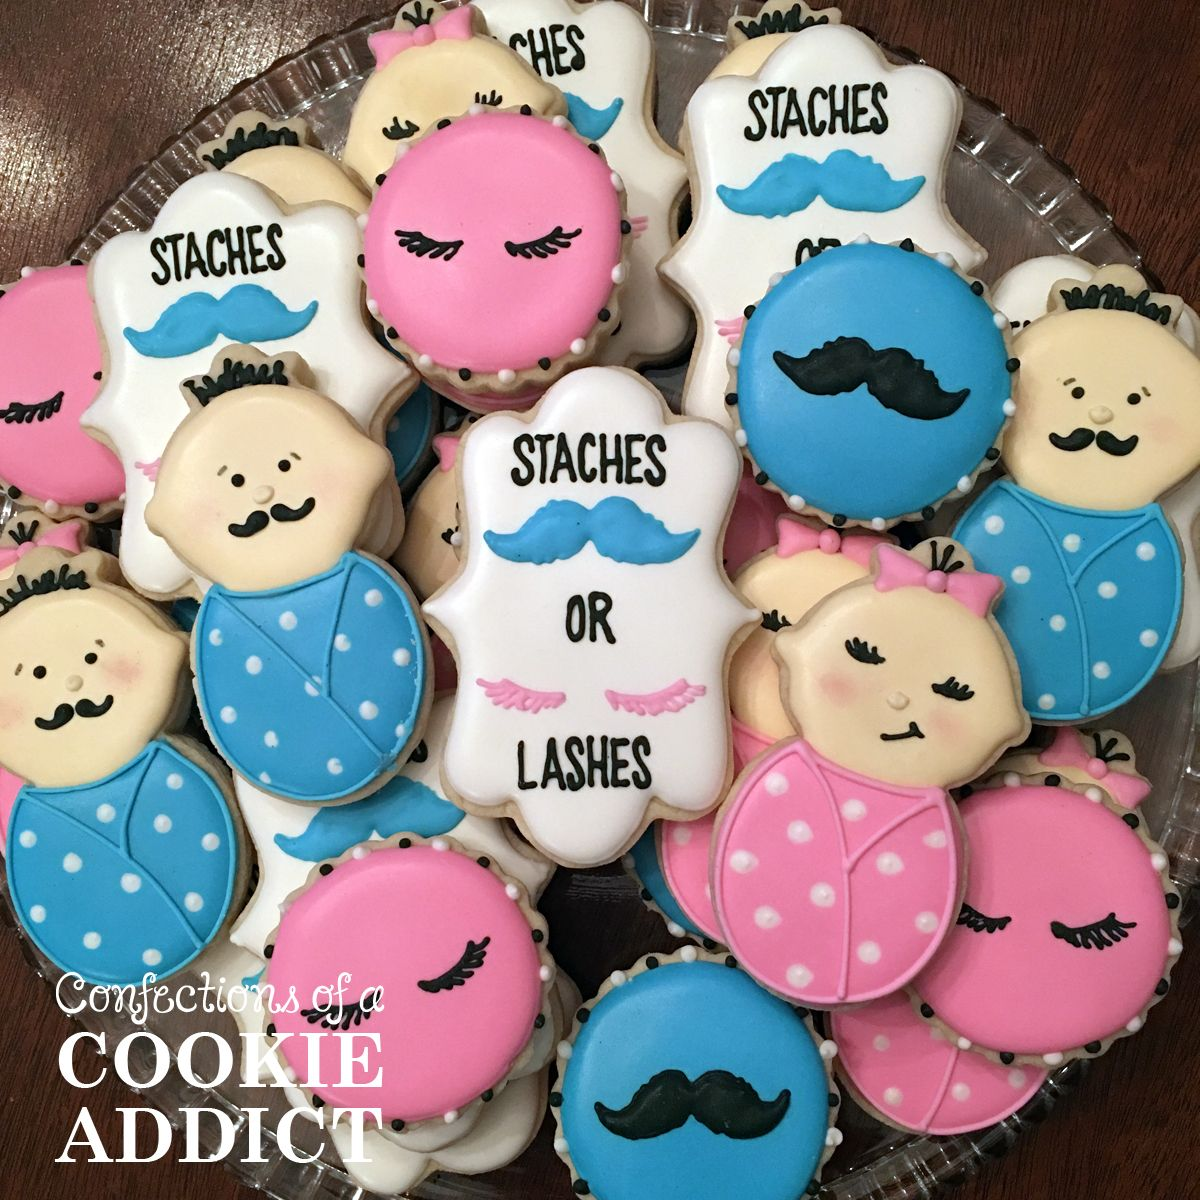 Staches And Lashes Cookies Gender Reveal Cookies Gender Reveal Candy Gender Reveal Party